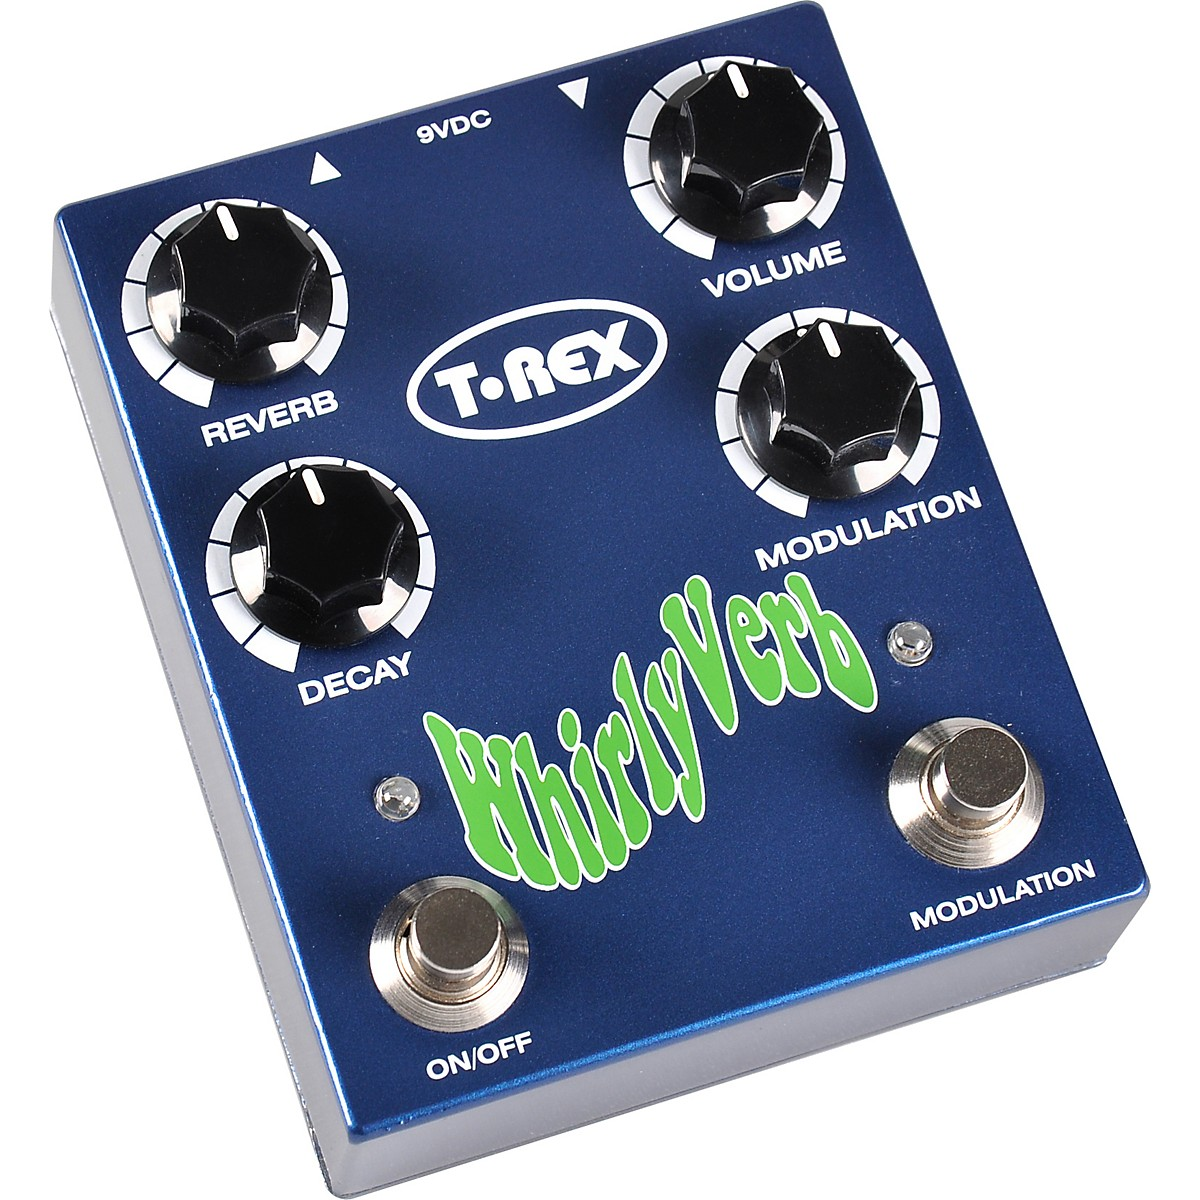 T-Rex Engineering Whirly Verb Reverb Guitar Effects Pedal